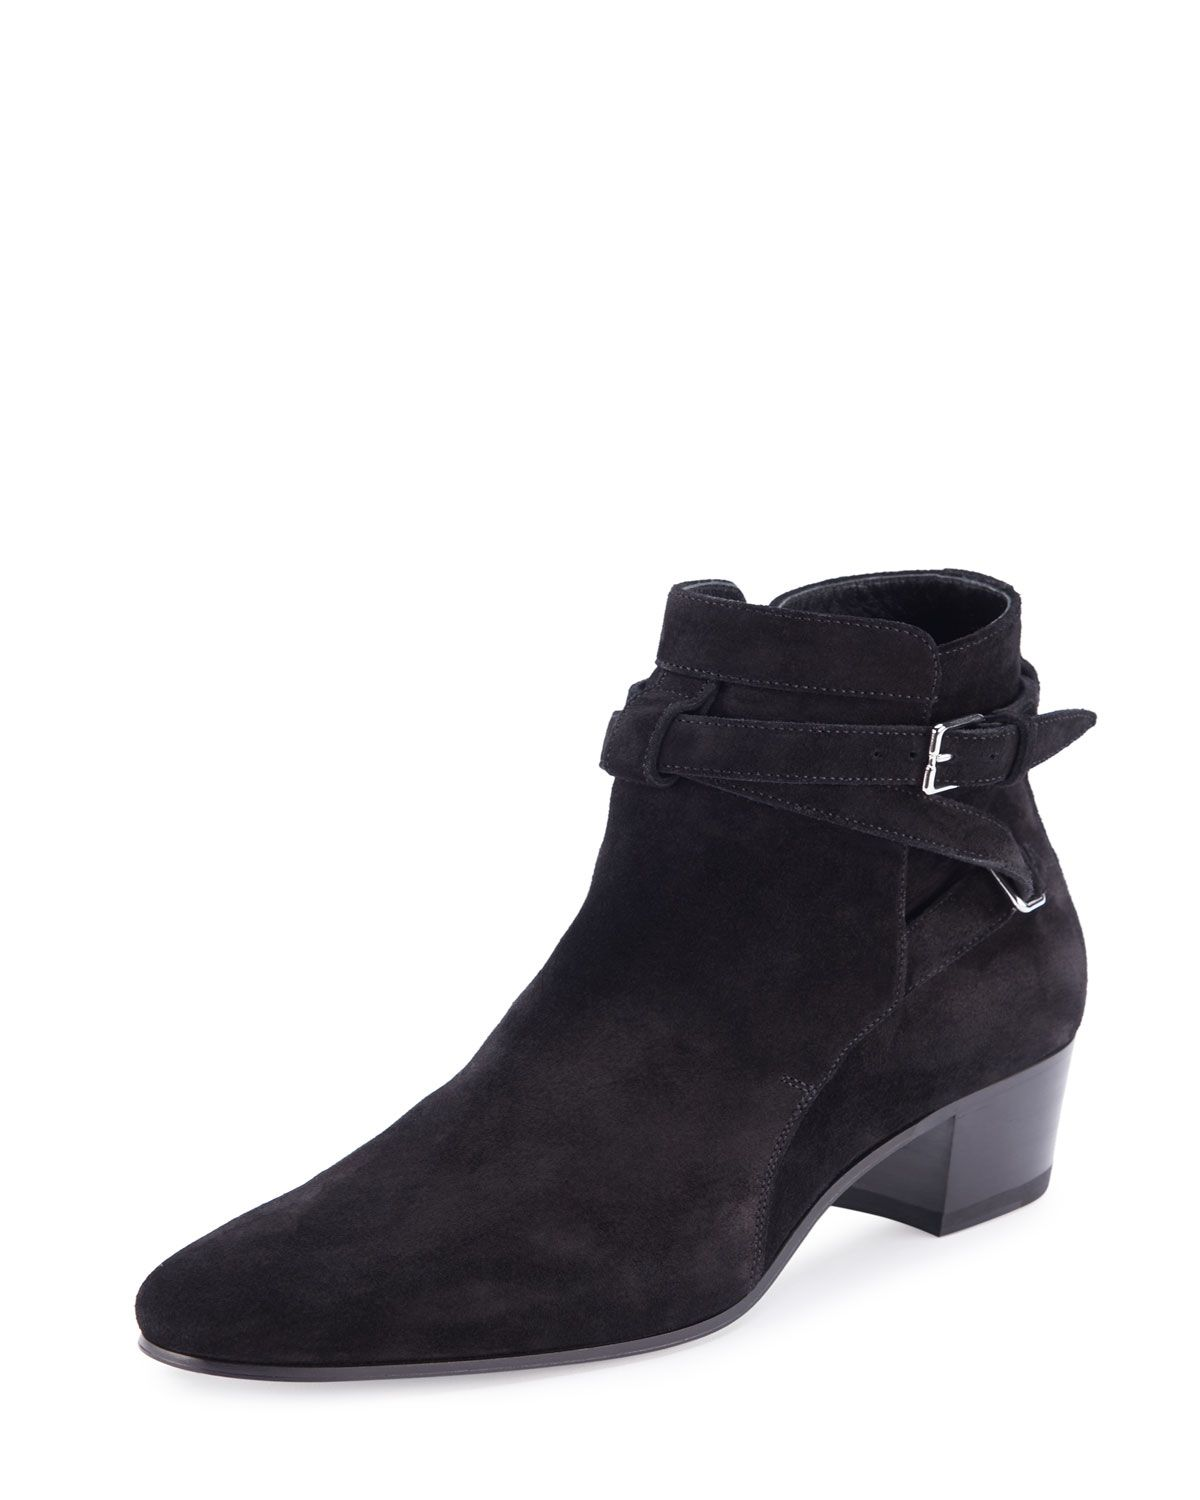 0b1c550f3a4 Yves Saint Laurent Blake Suede Ankle-Wrap Bootie, Nero | *Neiman ...